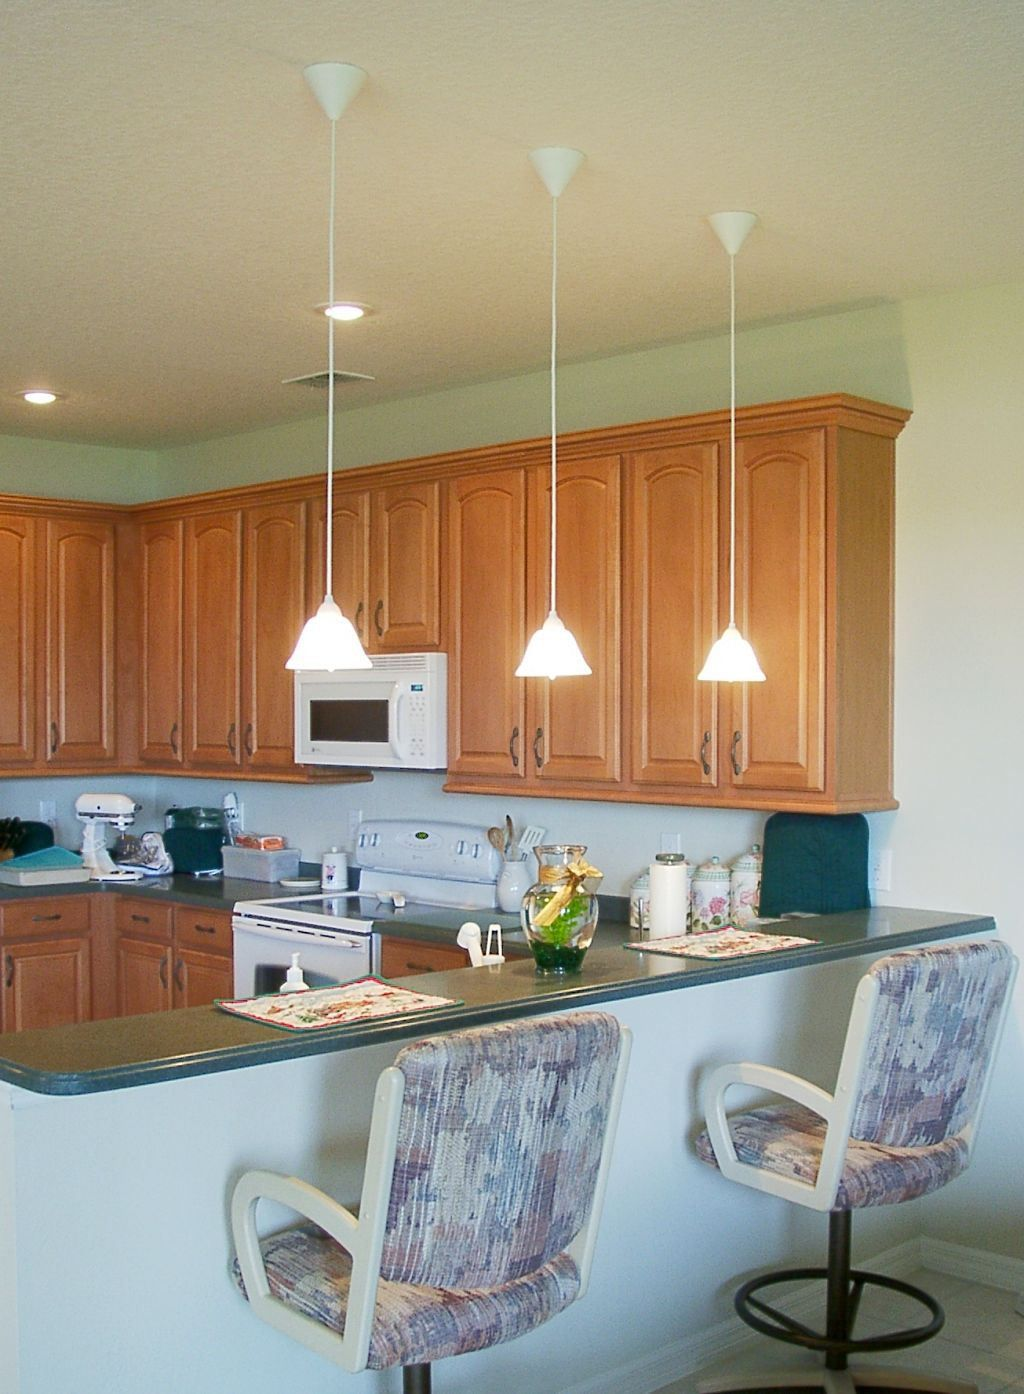 Kitchen Island Lighting Ideas Low Hanging Mini Pendant Lights Over Kitchen Island For An